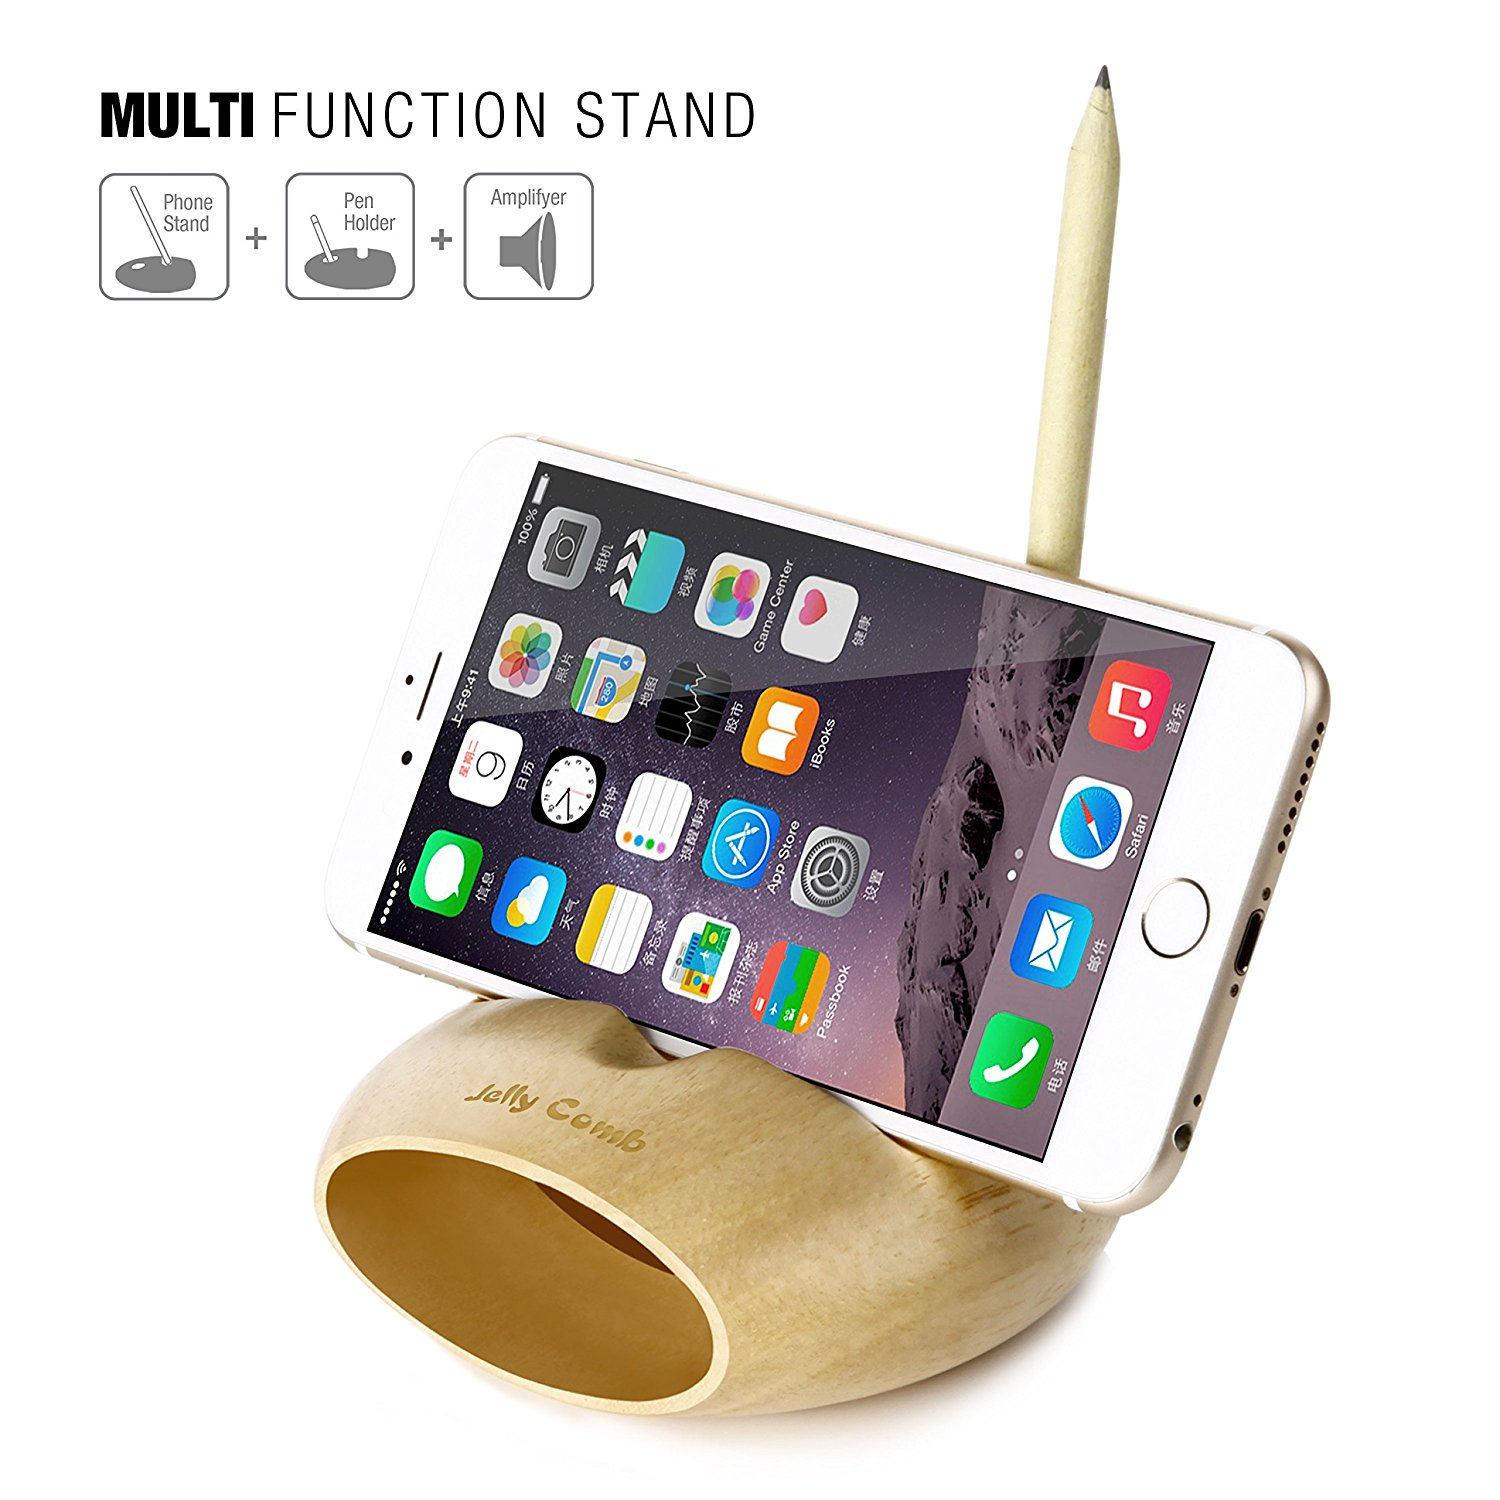 Cell Phone Charging Dock Jelly Comb Desk Wood Holder Stand Mobile Sound Amplifier For